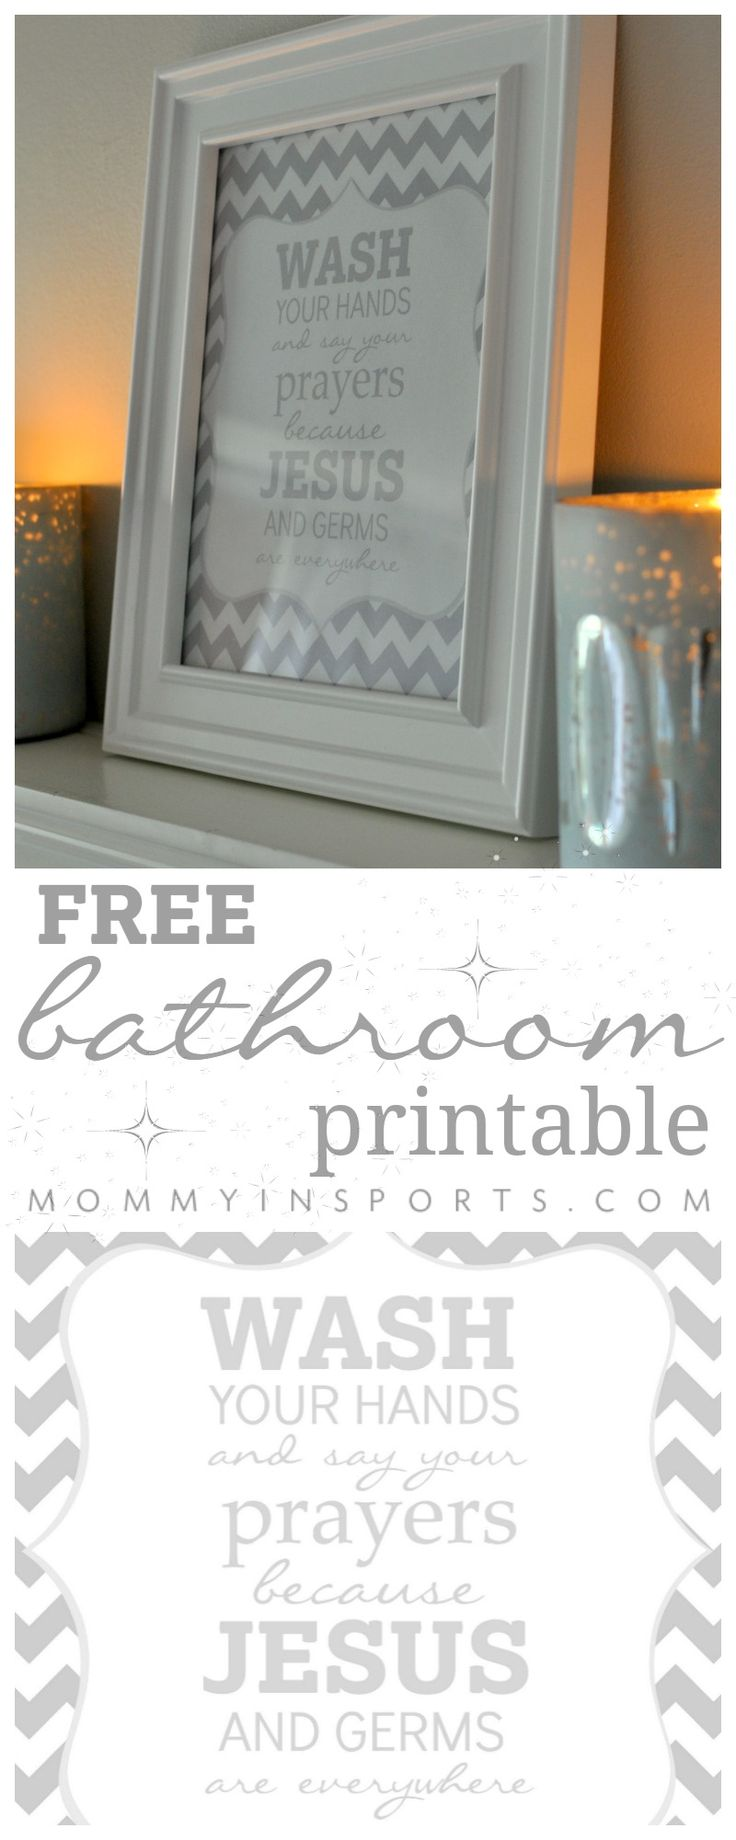 Bathroom wall art printables - Free Bathroom Printable